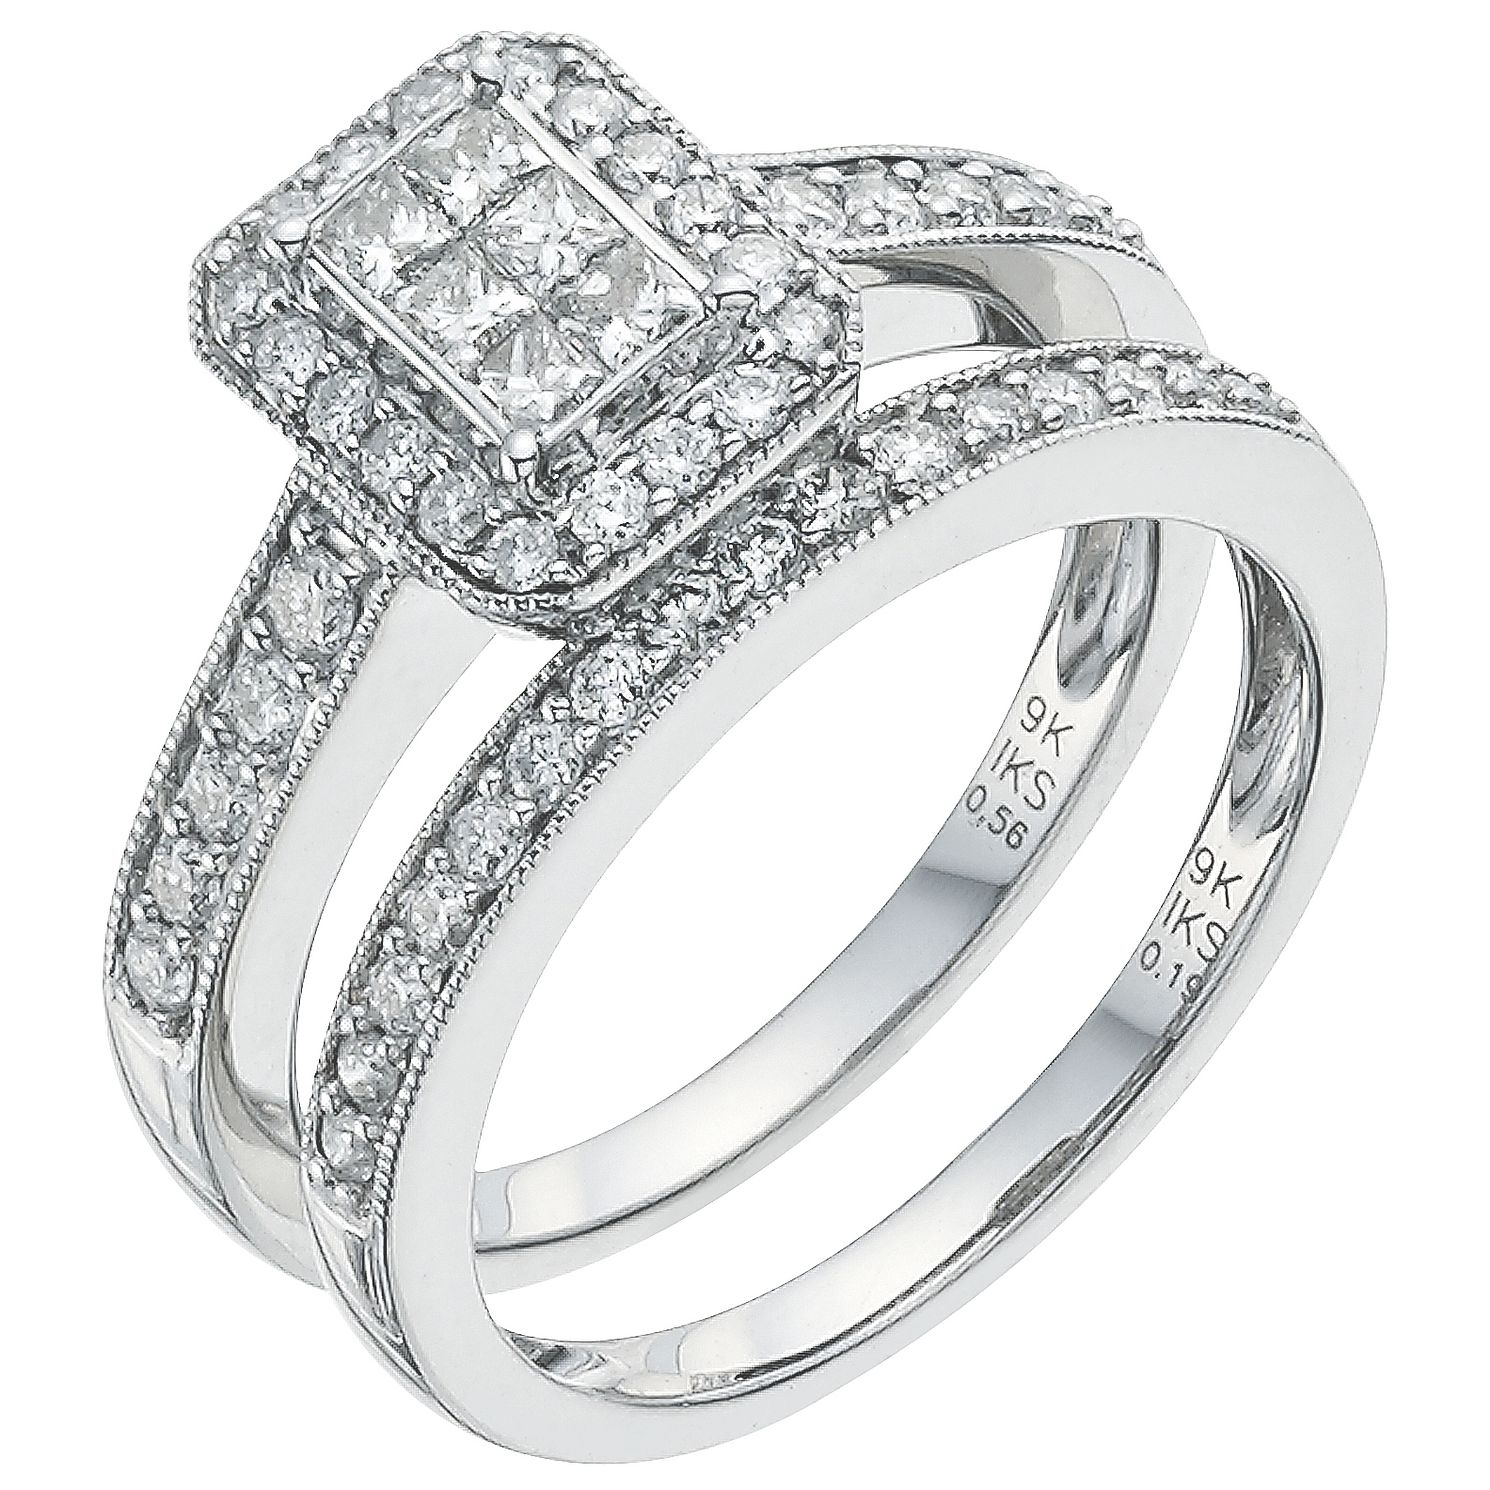 Perfect Fit Platinum 3/4ct Diamond Bridal Set - Product number 5258863